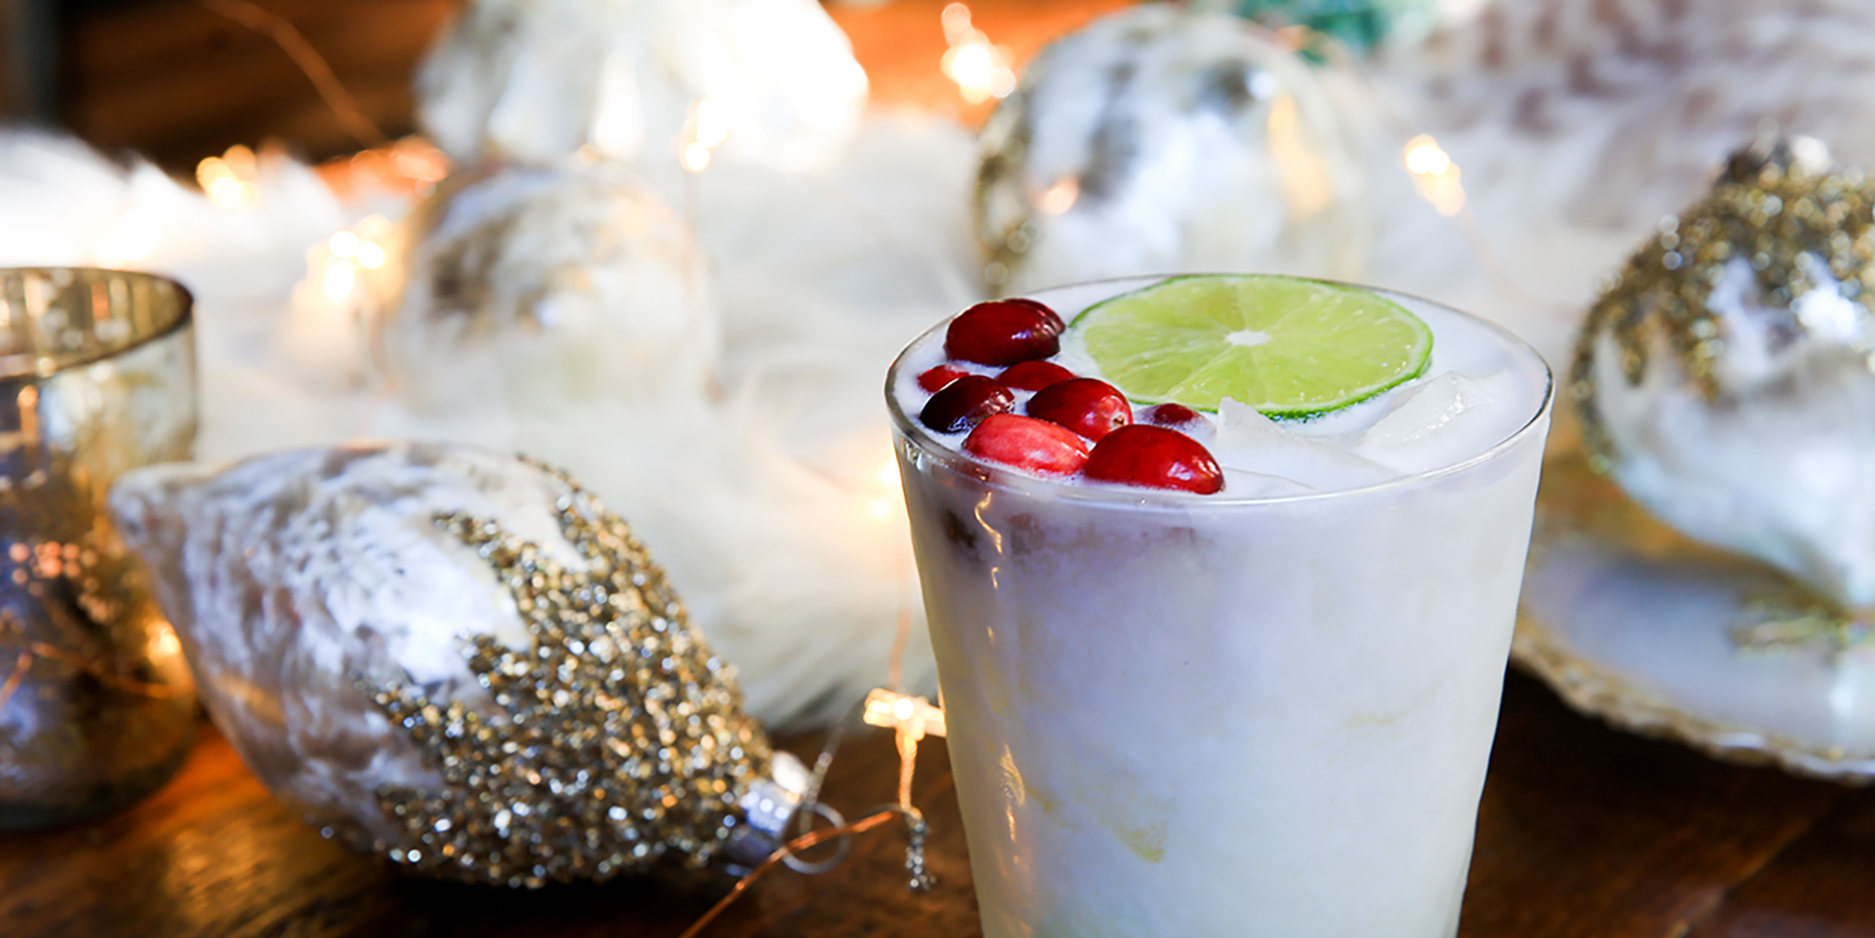 Festive Restaurants to Celebrate the Holidays in NYC